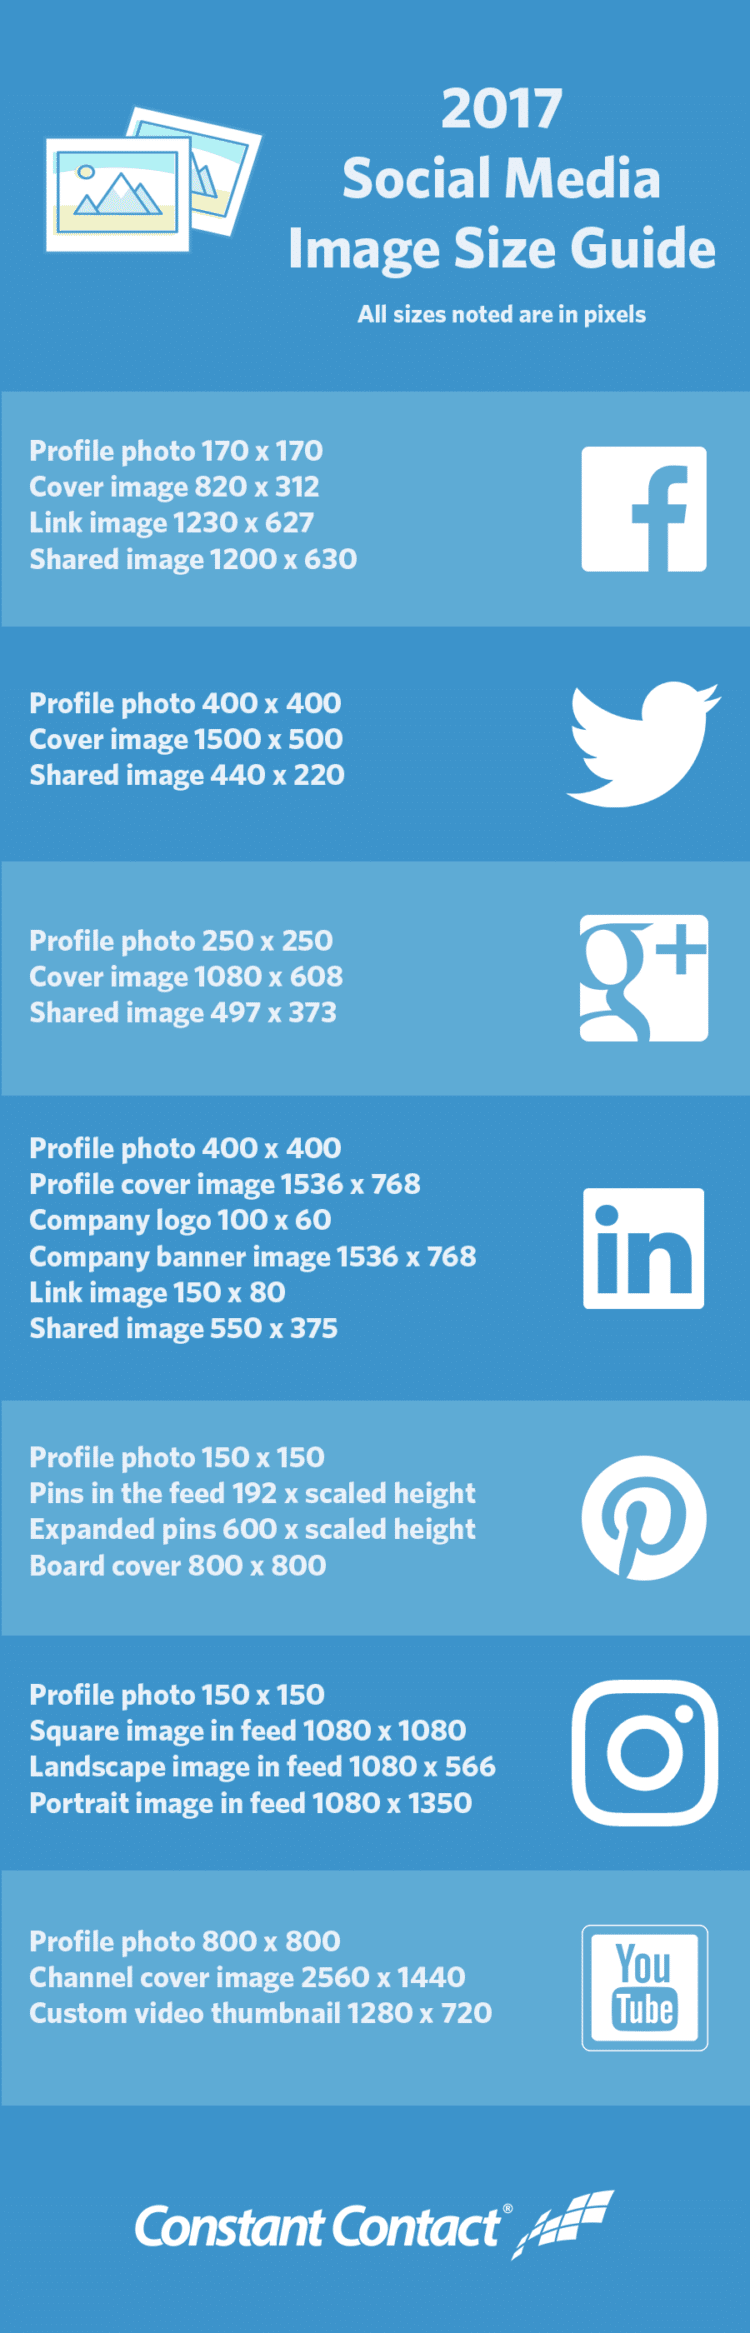 Social Media Image Sizes Guide 2017